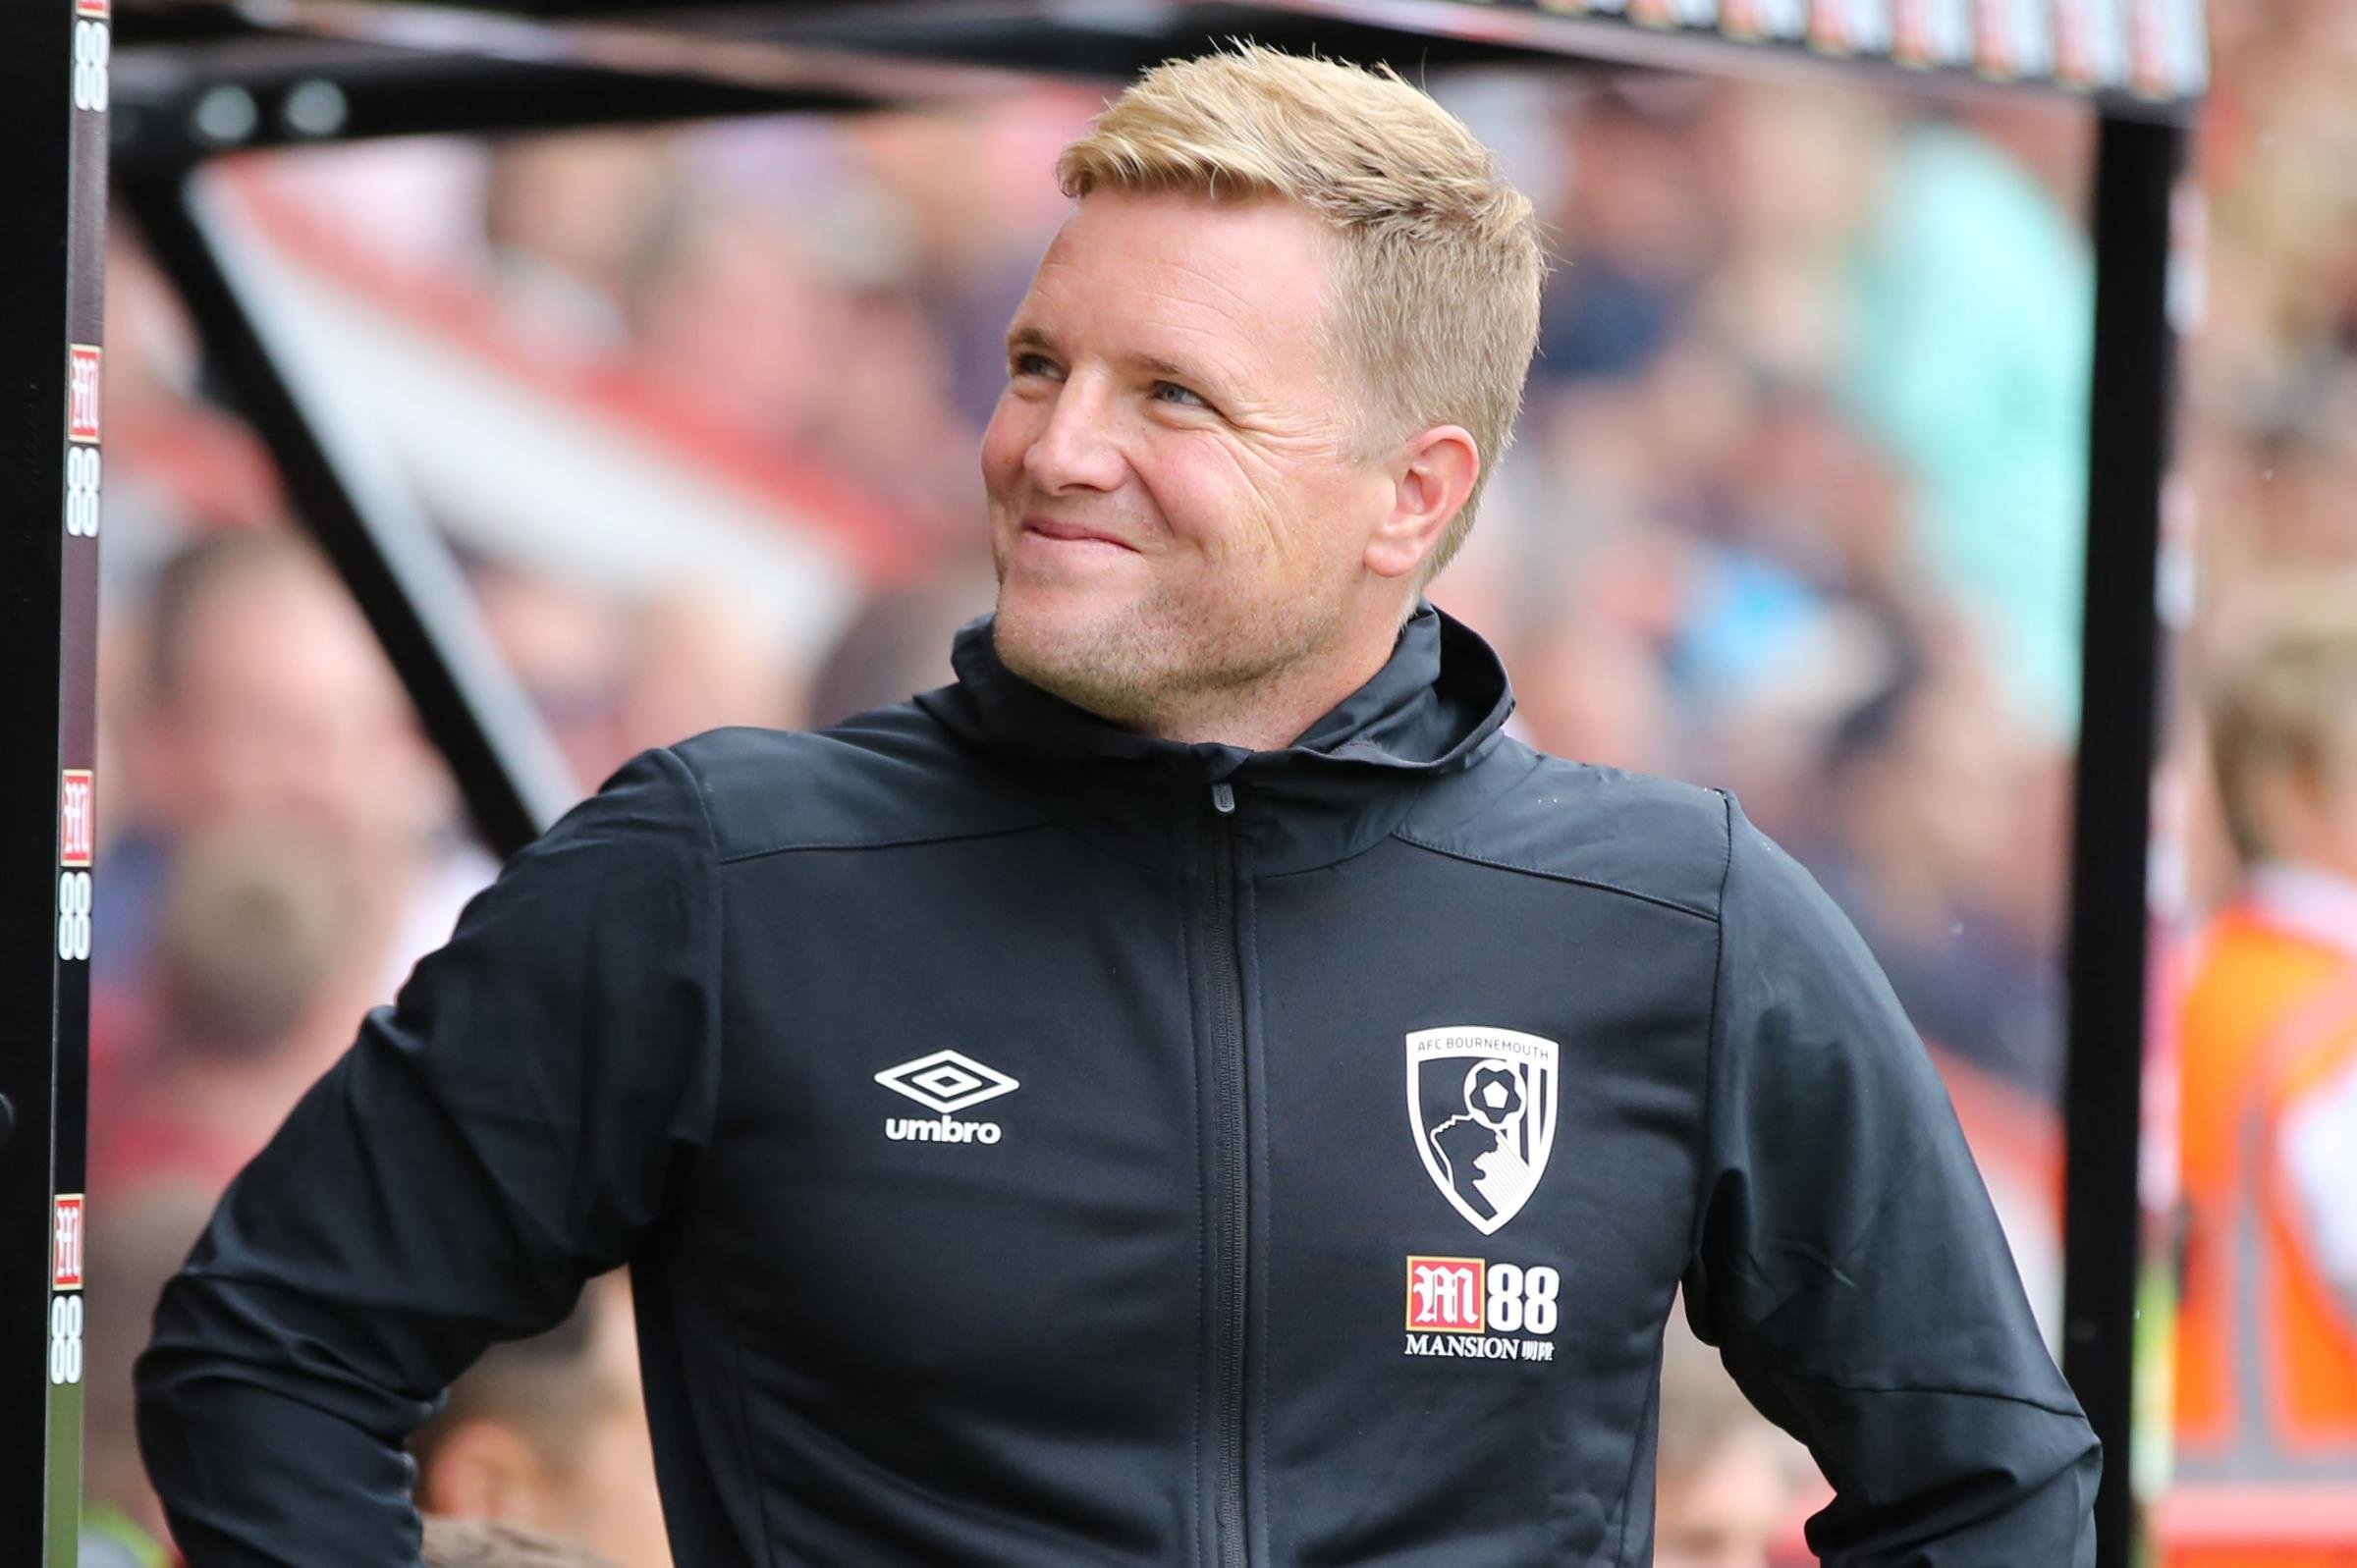 Top gun Eddie Howe wants AFC Bournemouth firing on all cylinders after taking squad clay pigeon shooting